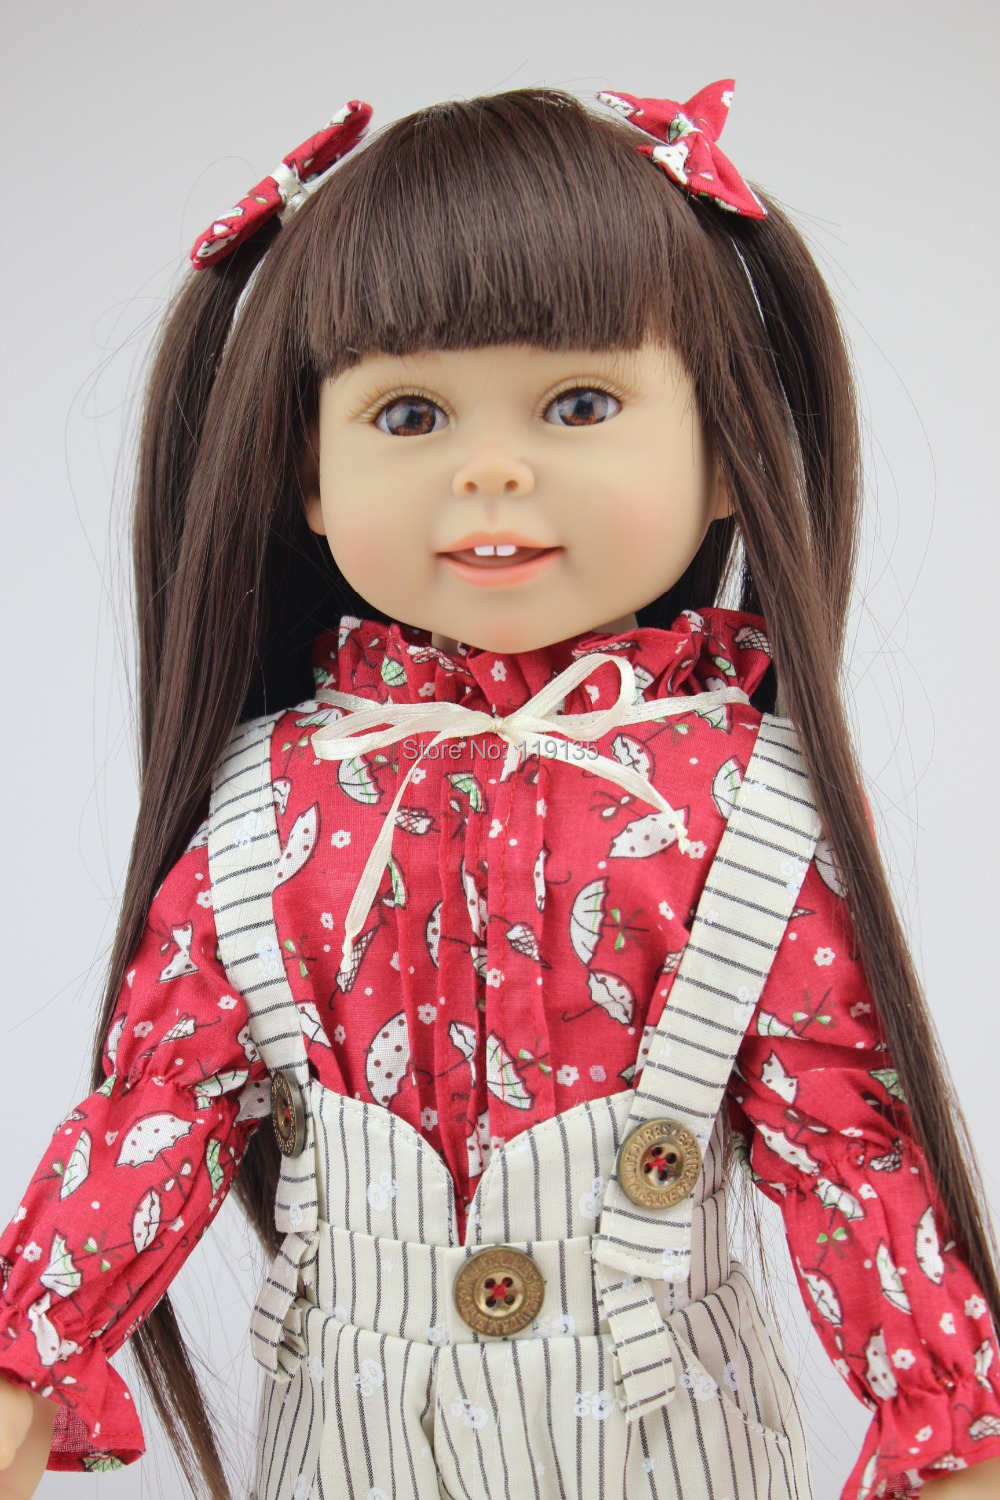 ФОТО Free shipment 18'' 45CM american girl Brown Long hair Beauty Girl Reborn handmadere Imported Vinyl newborn baby girl doll